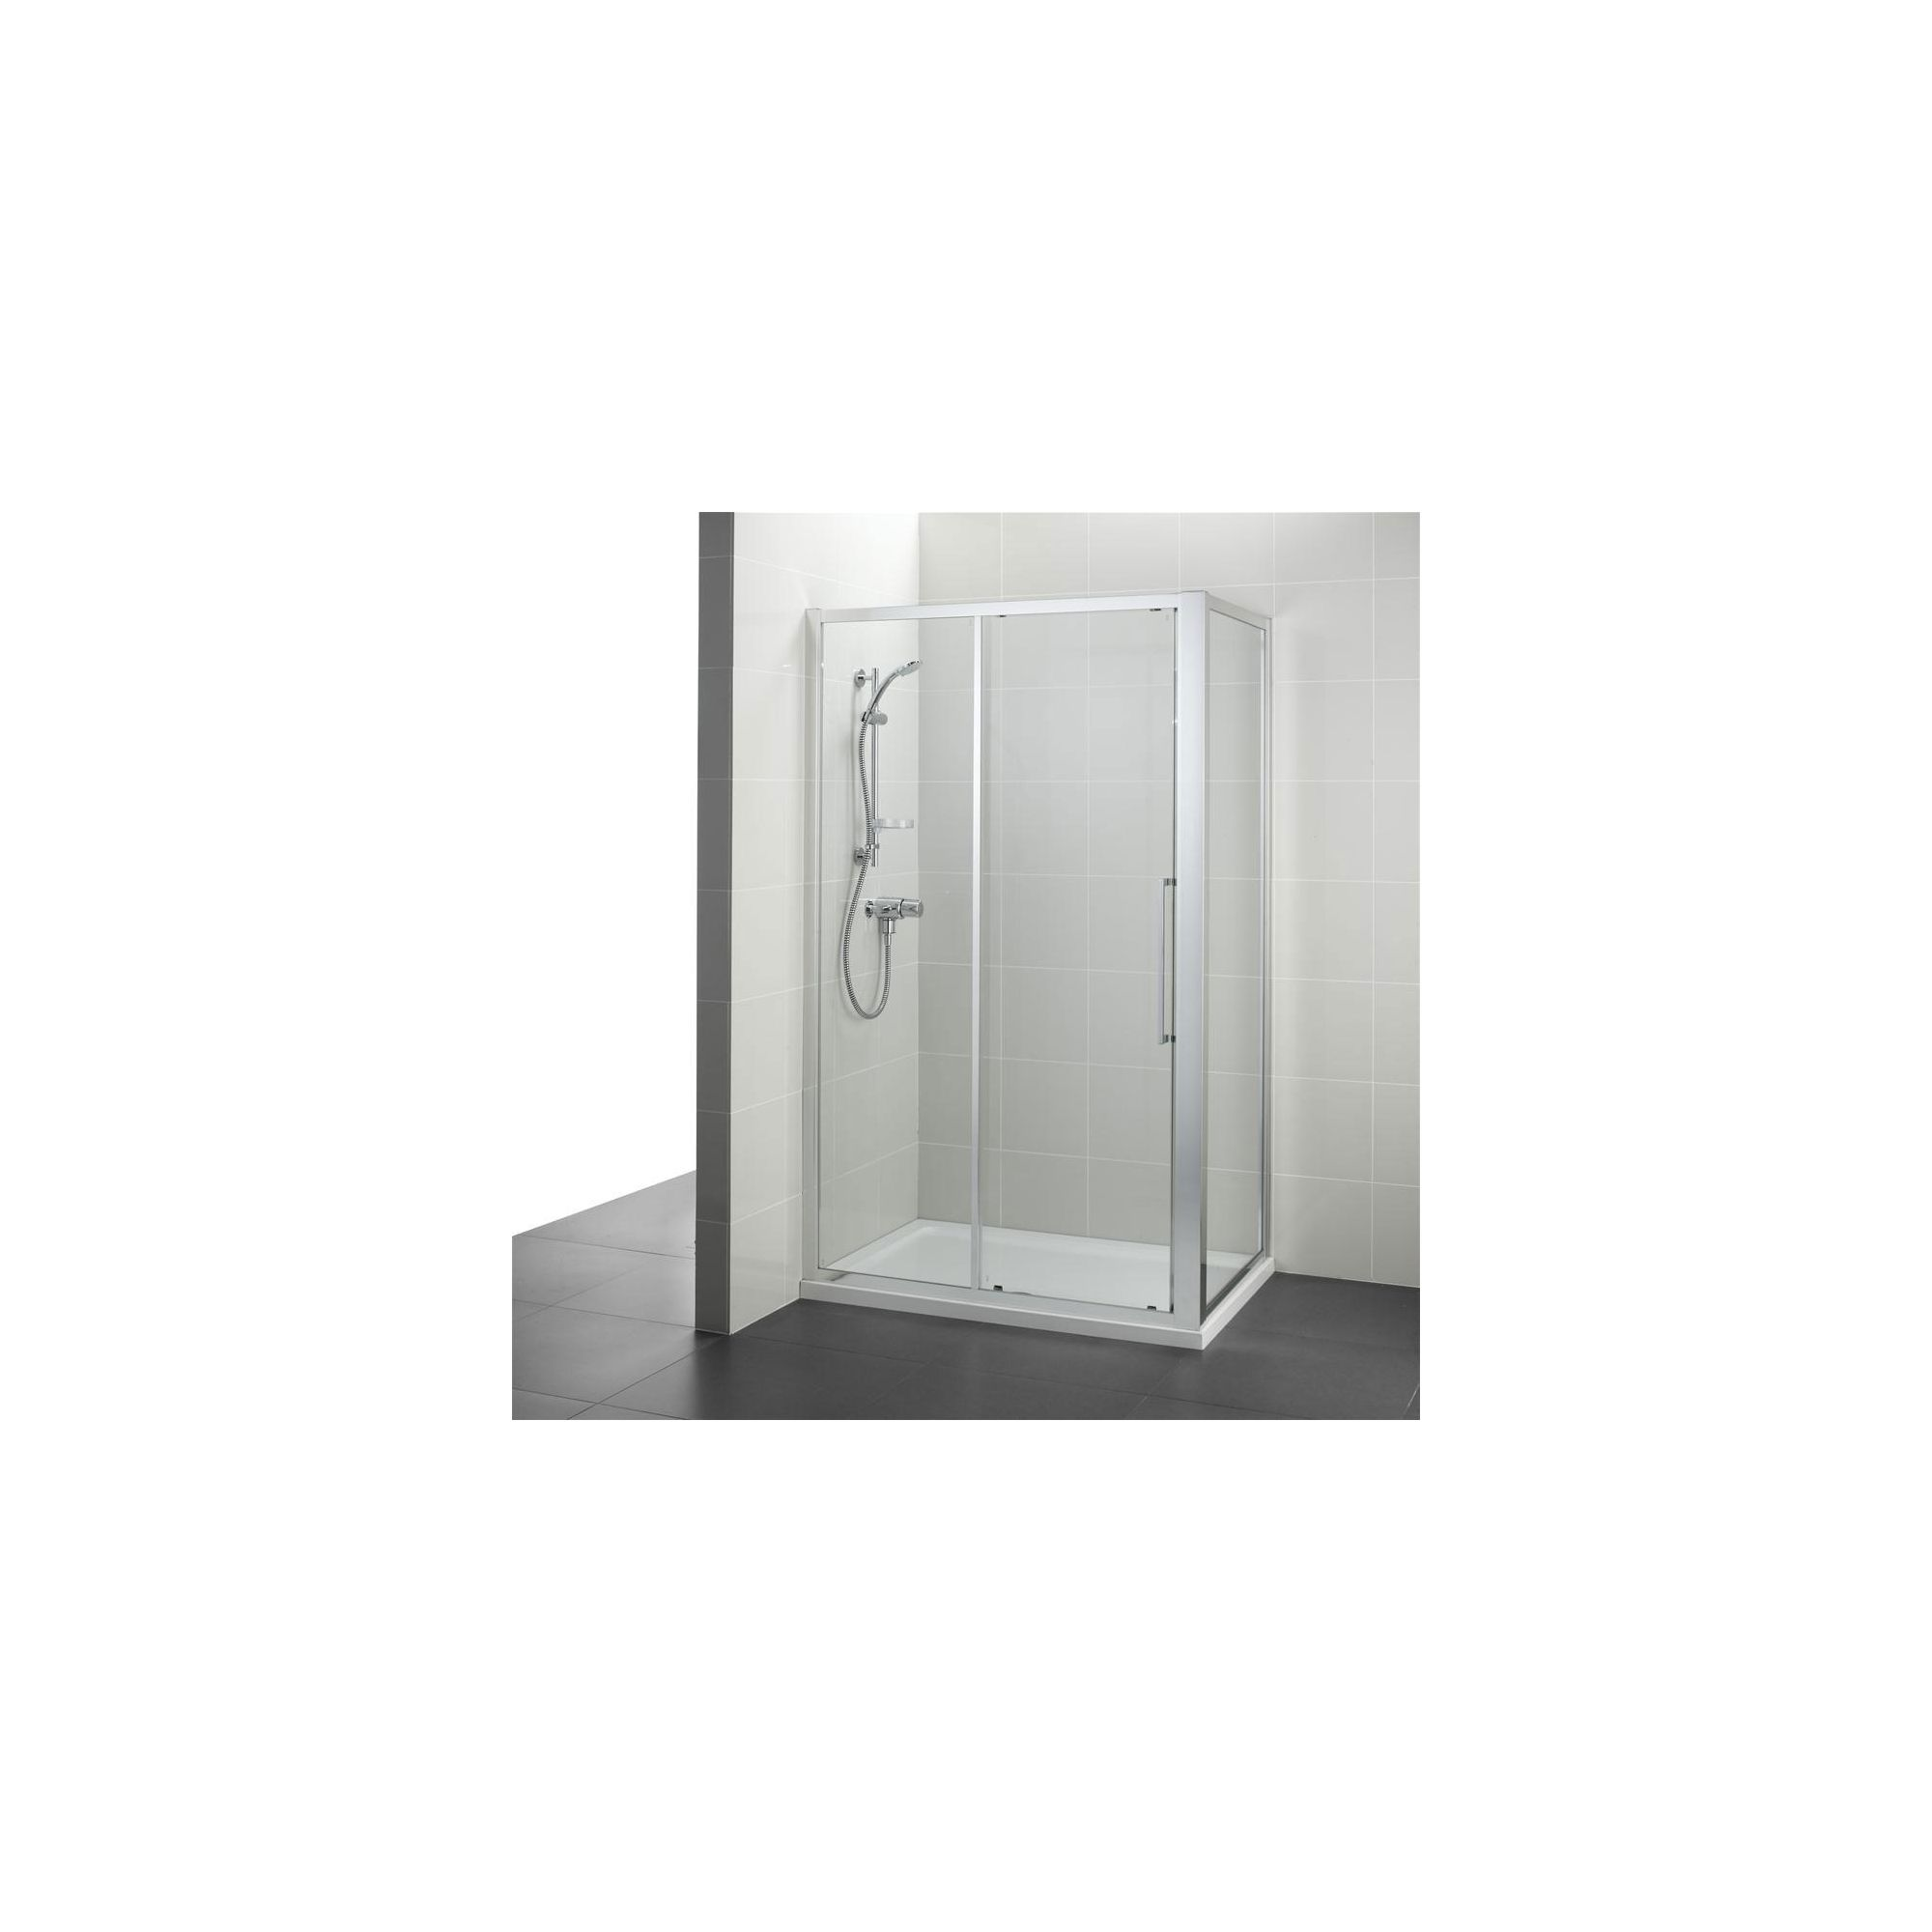 Ideal Standard Kubo Sliding Door Shower Enclosure, 1200mm x 760mm, Bright Silver Frame, Low Profile Tray at Tescos Direct